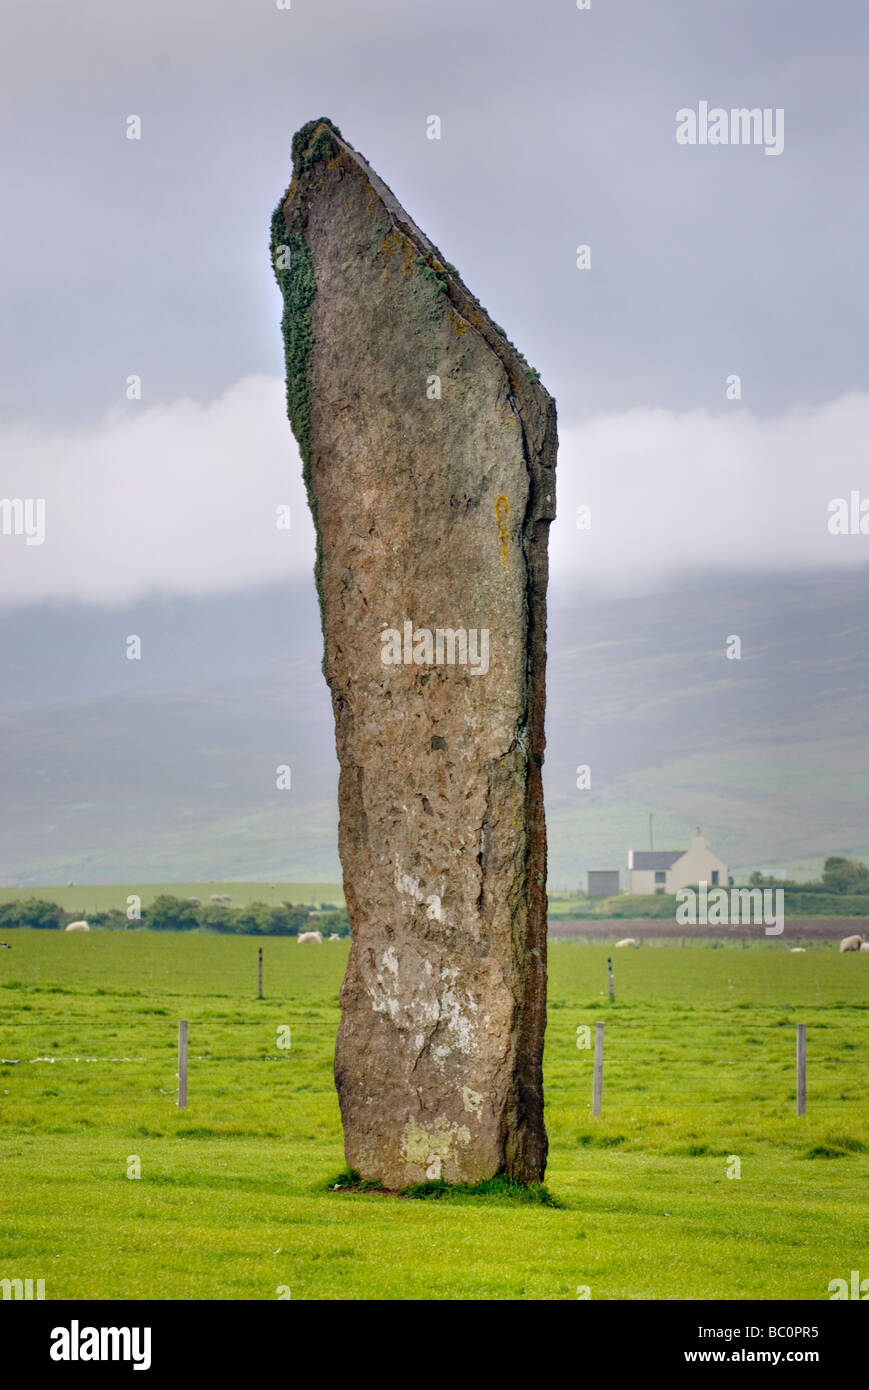 Standing Stones of Steness a Neolithic stone circle dating from 3100BC Orkney Islands Scotland - Stock Image